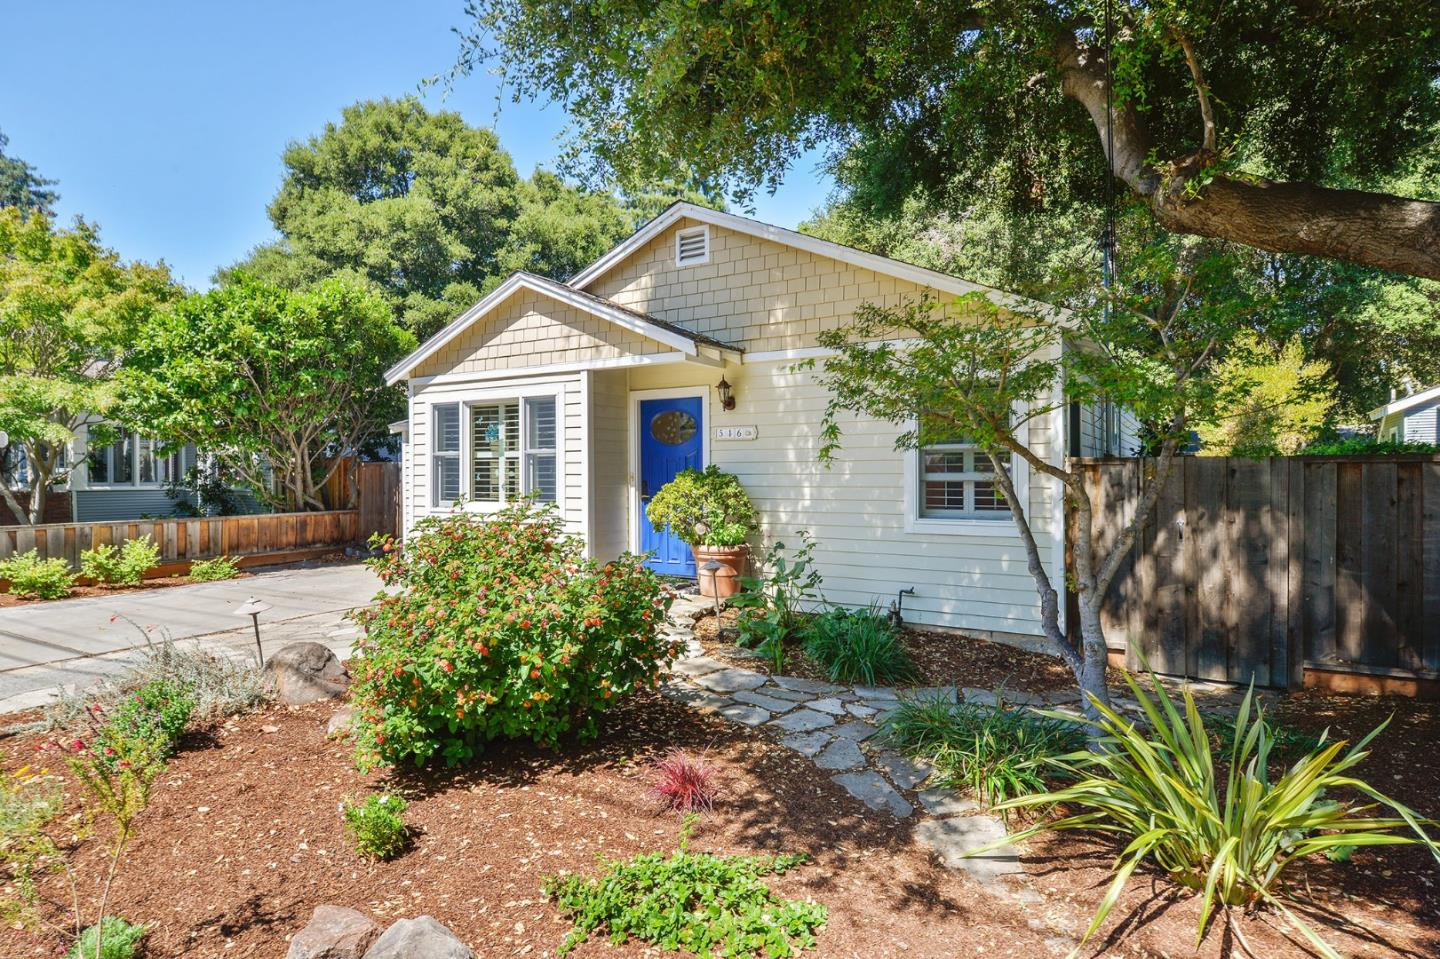 516 VIEW ST, MOUNTAIN VIEW, CA 94041